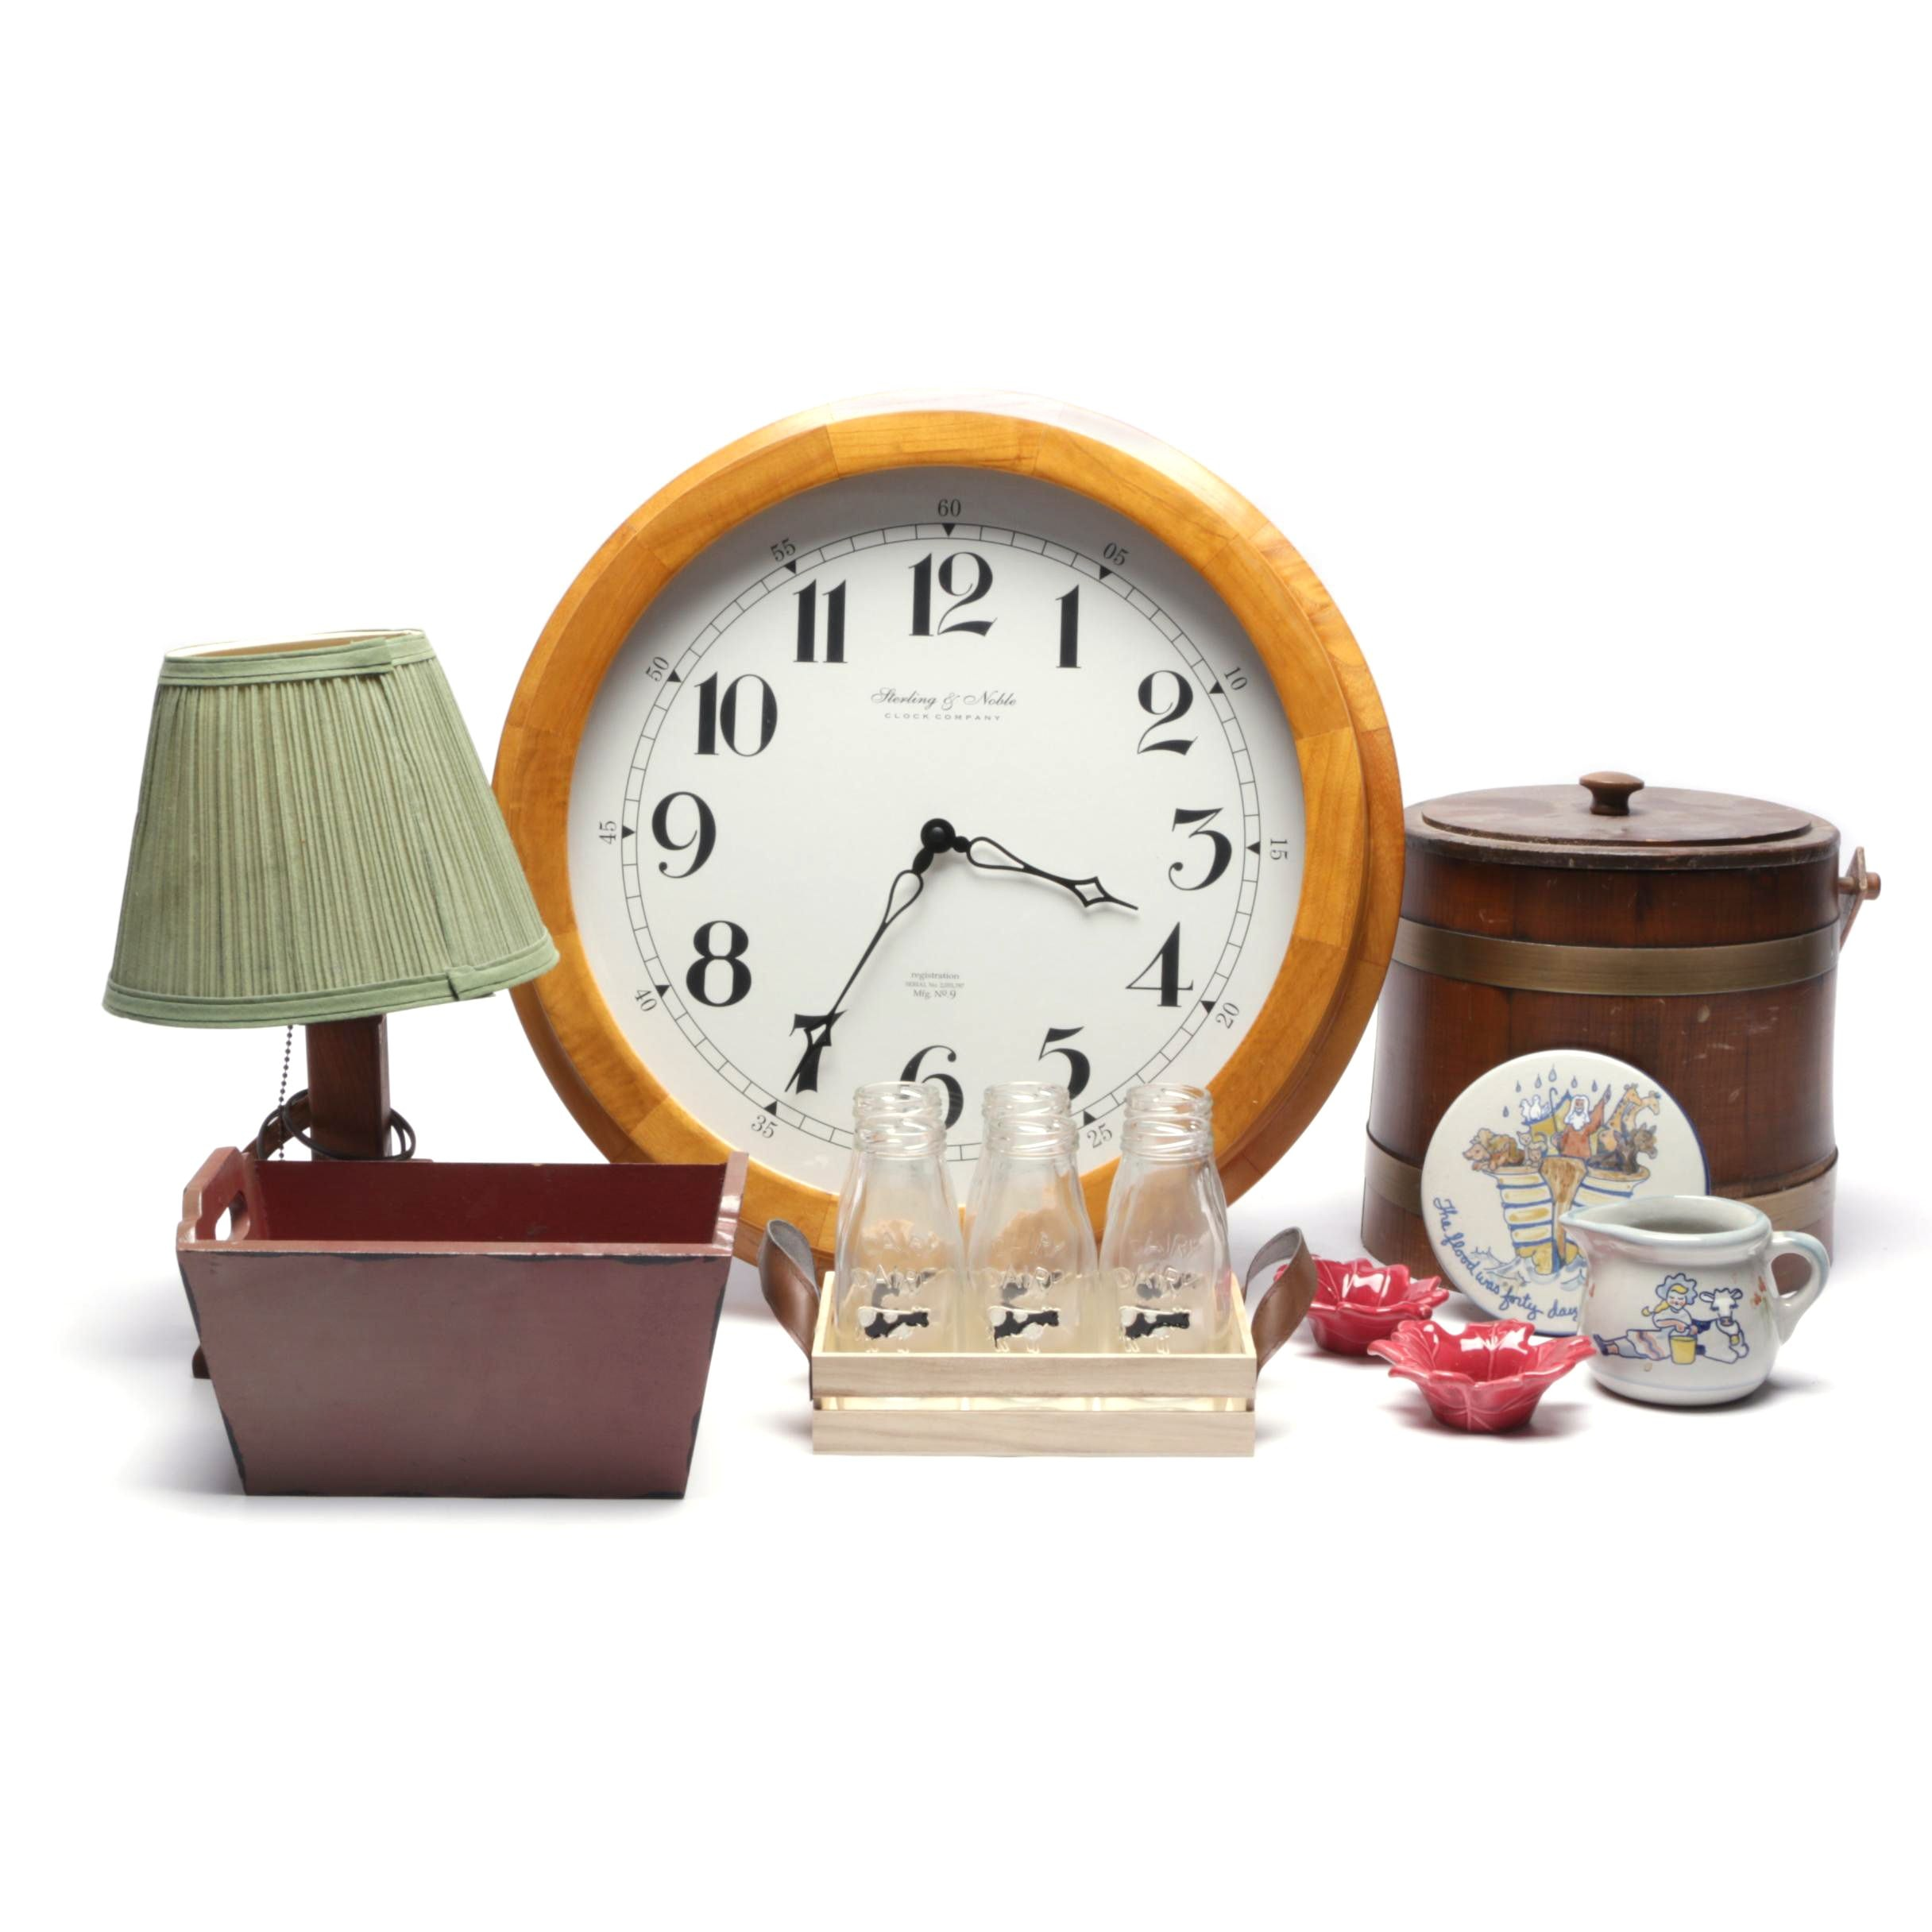 Decor Items Including Novelty Wall Clock by Sterling & Noble